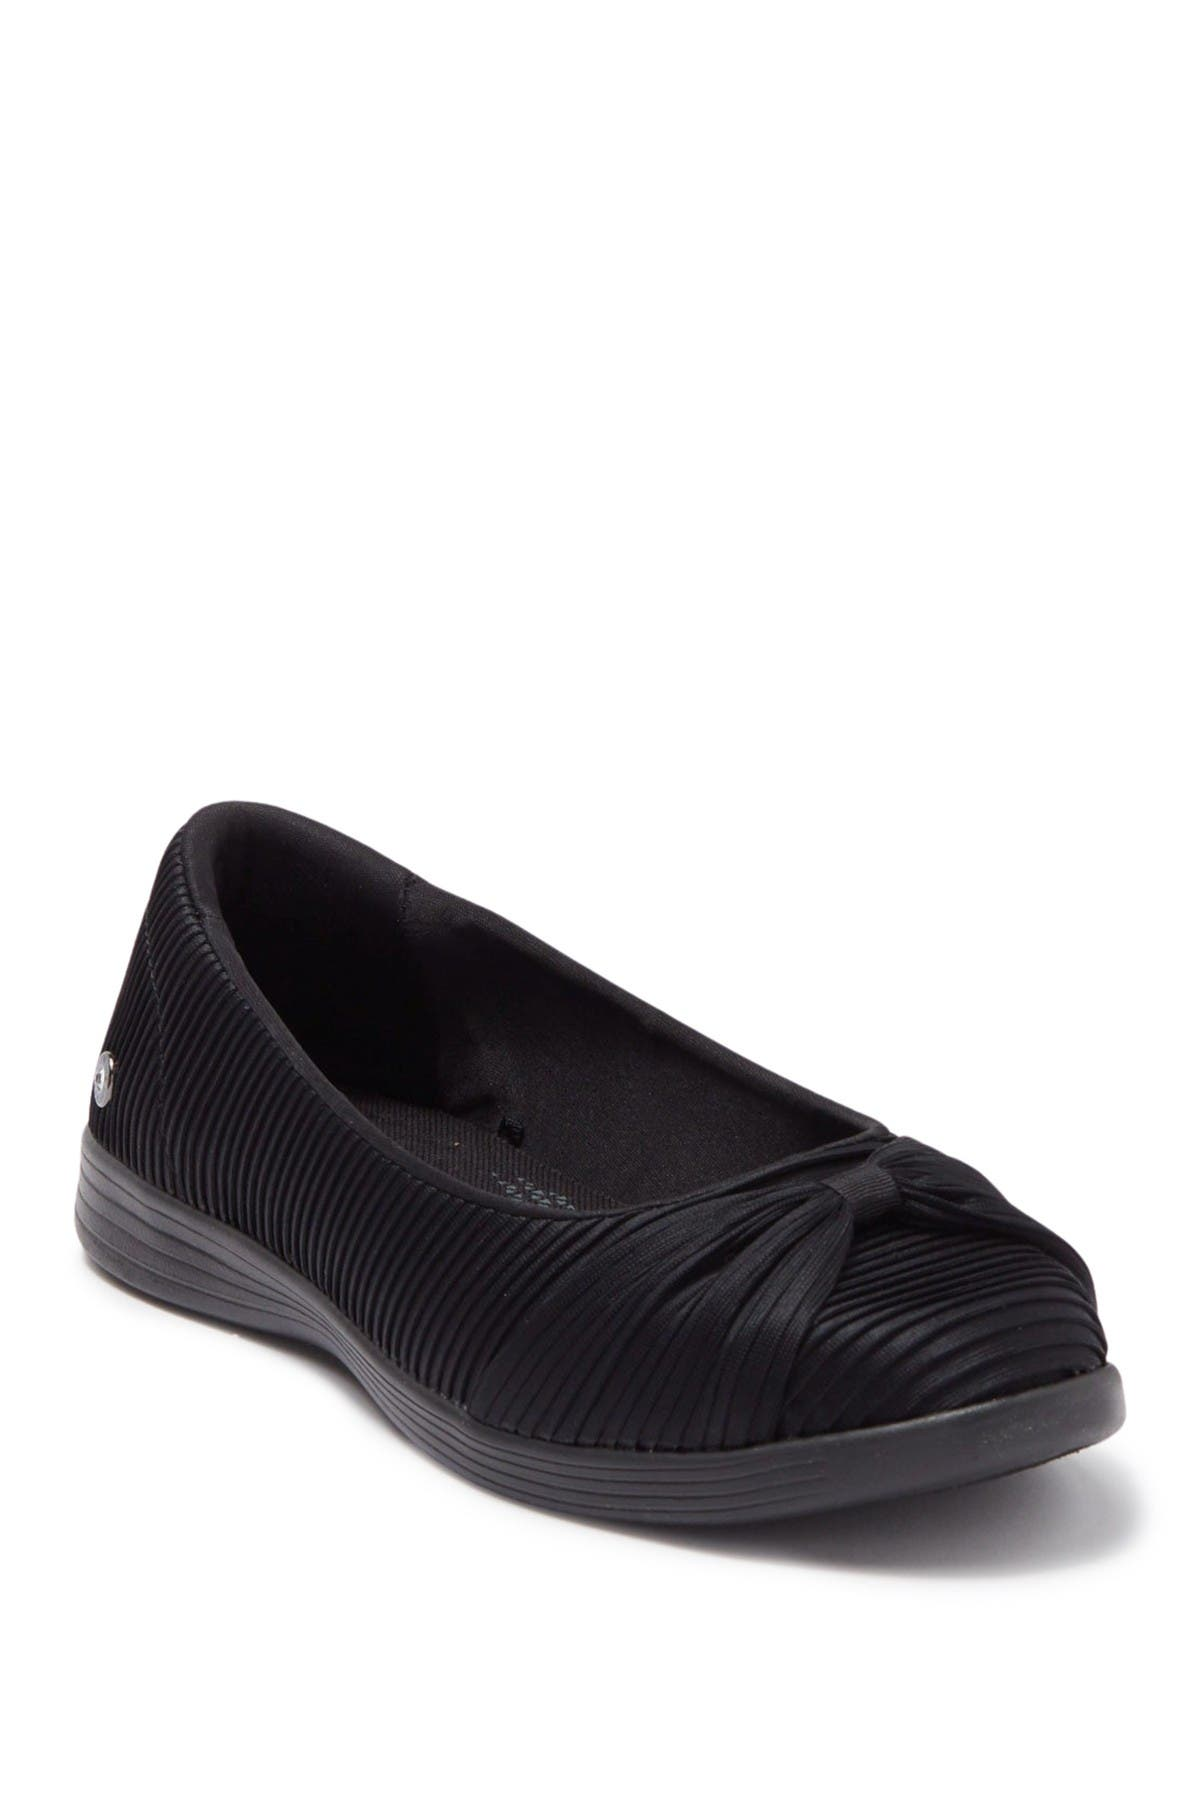 Image of Skechers On-The-Go Dreamy Bow Flat